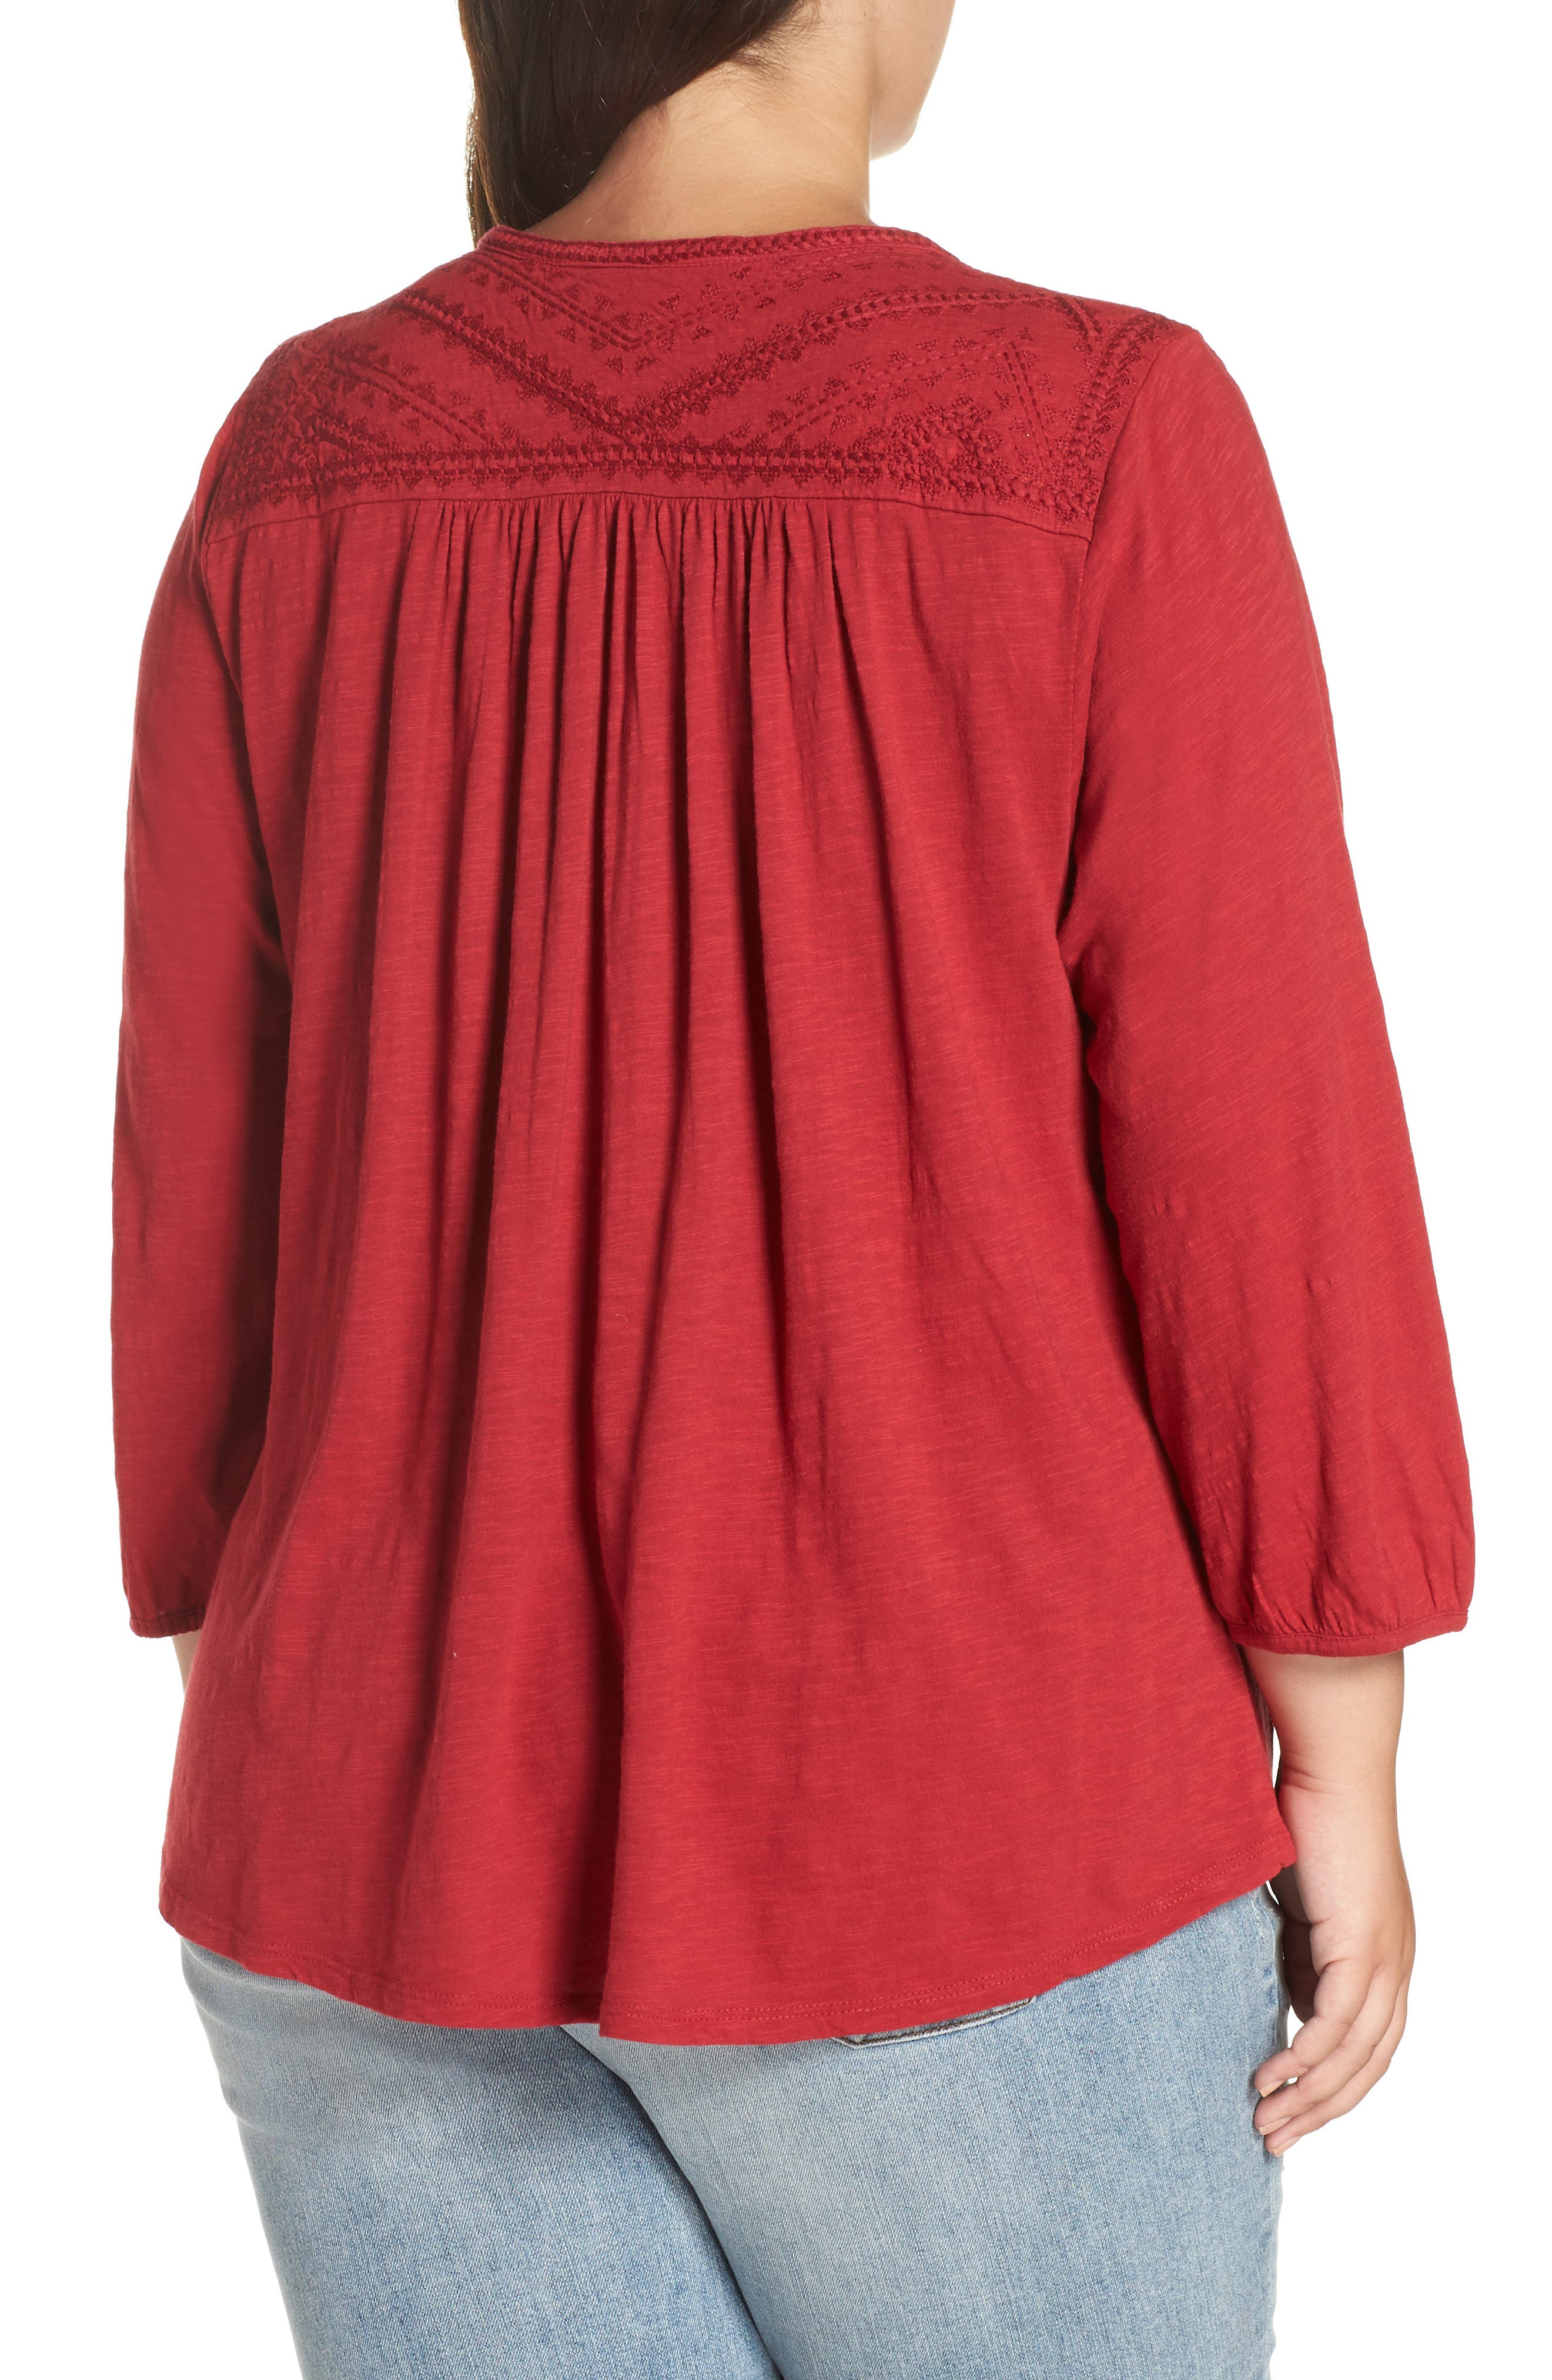 Embroidered Top,                             Alternate thumbnail 2, color,                             600